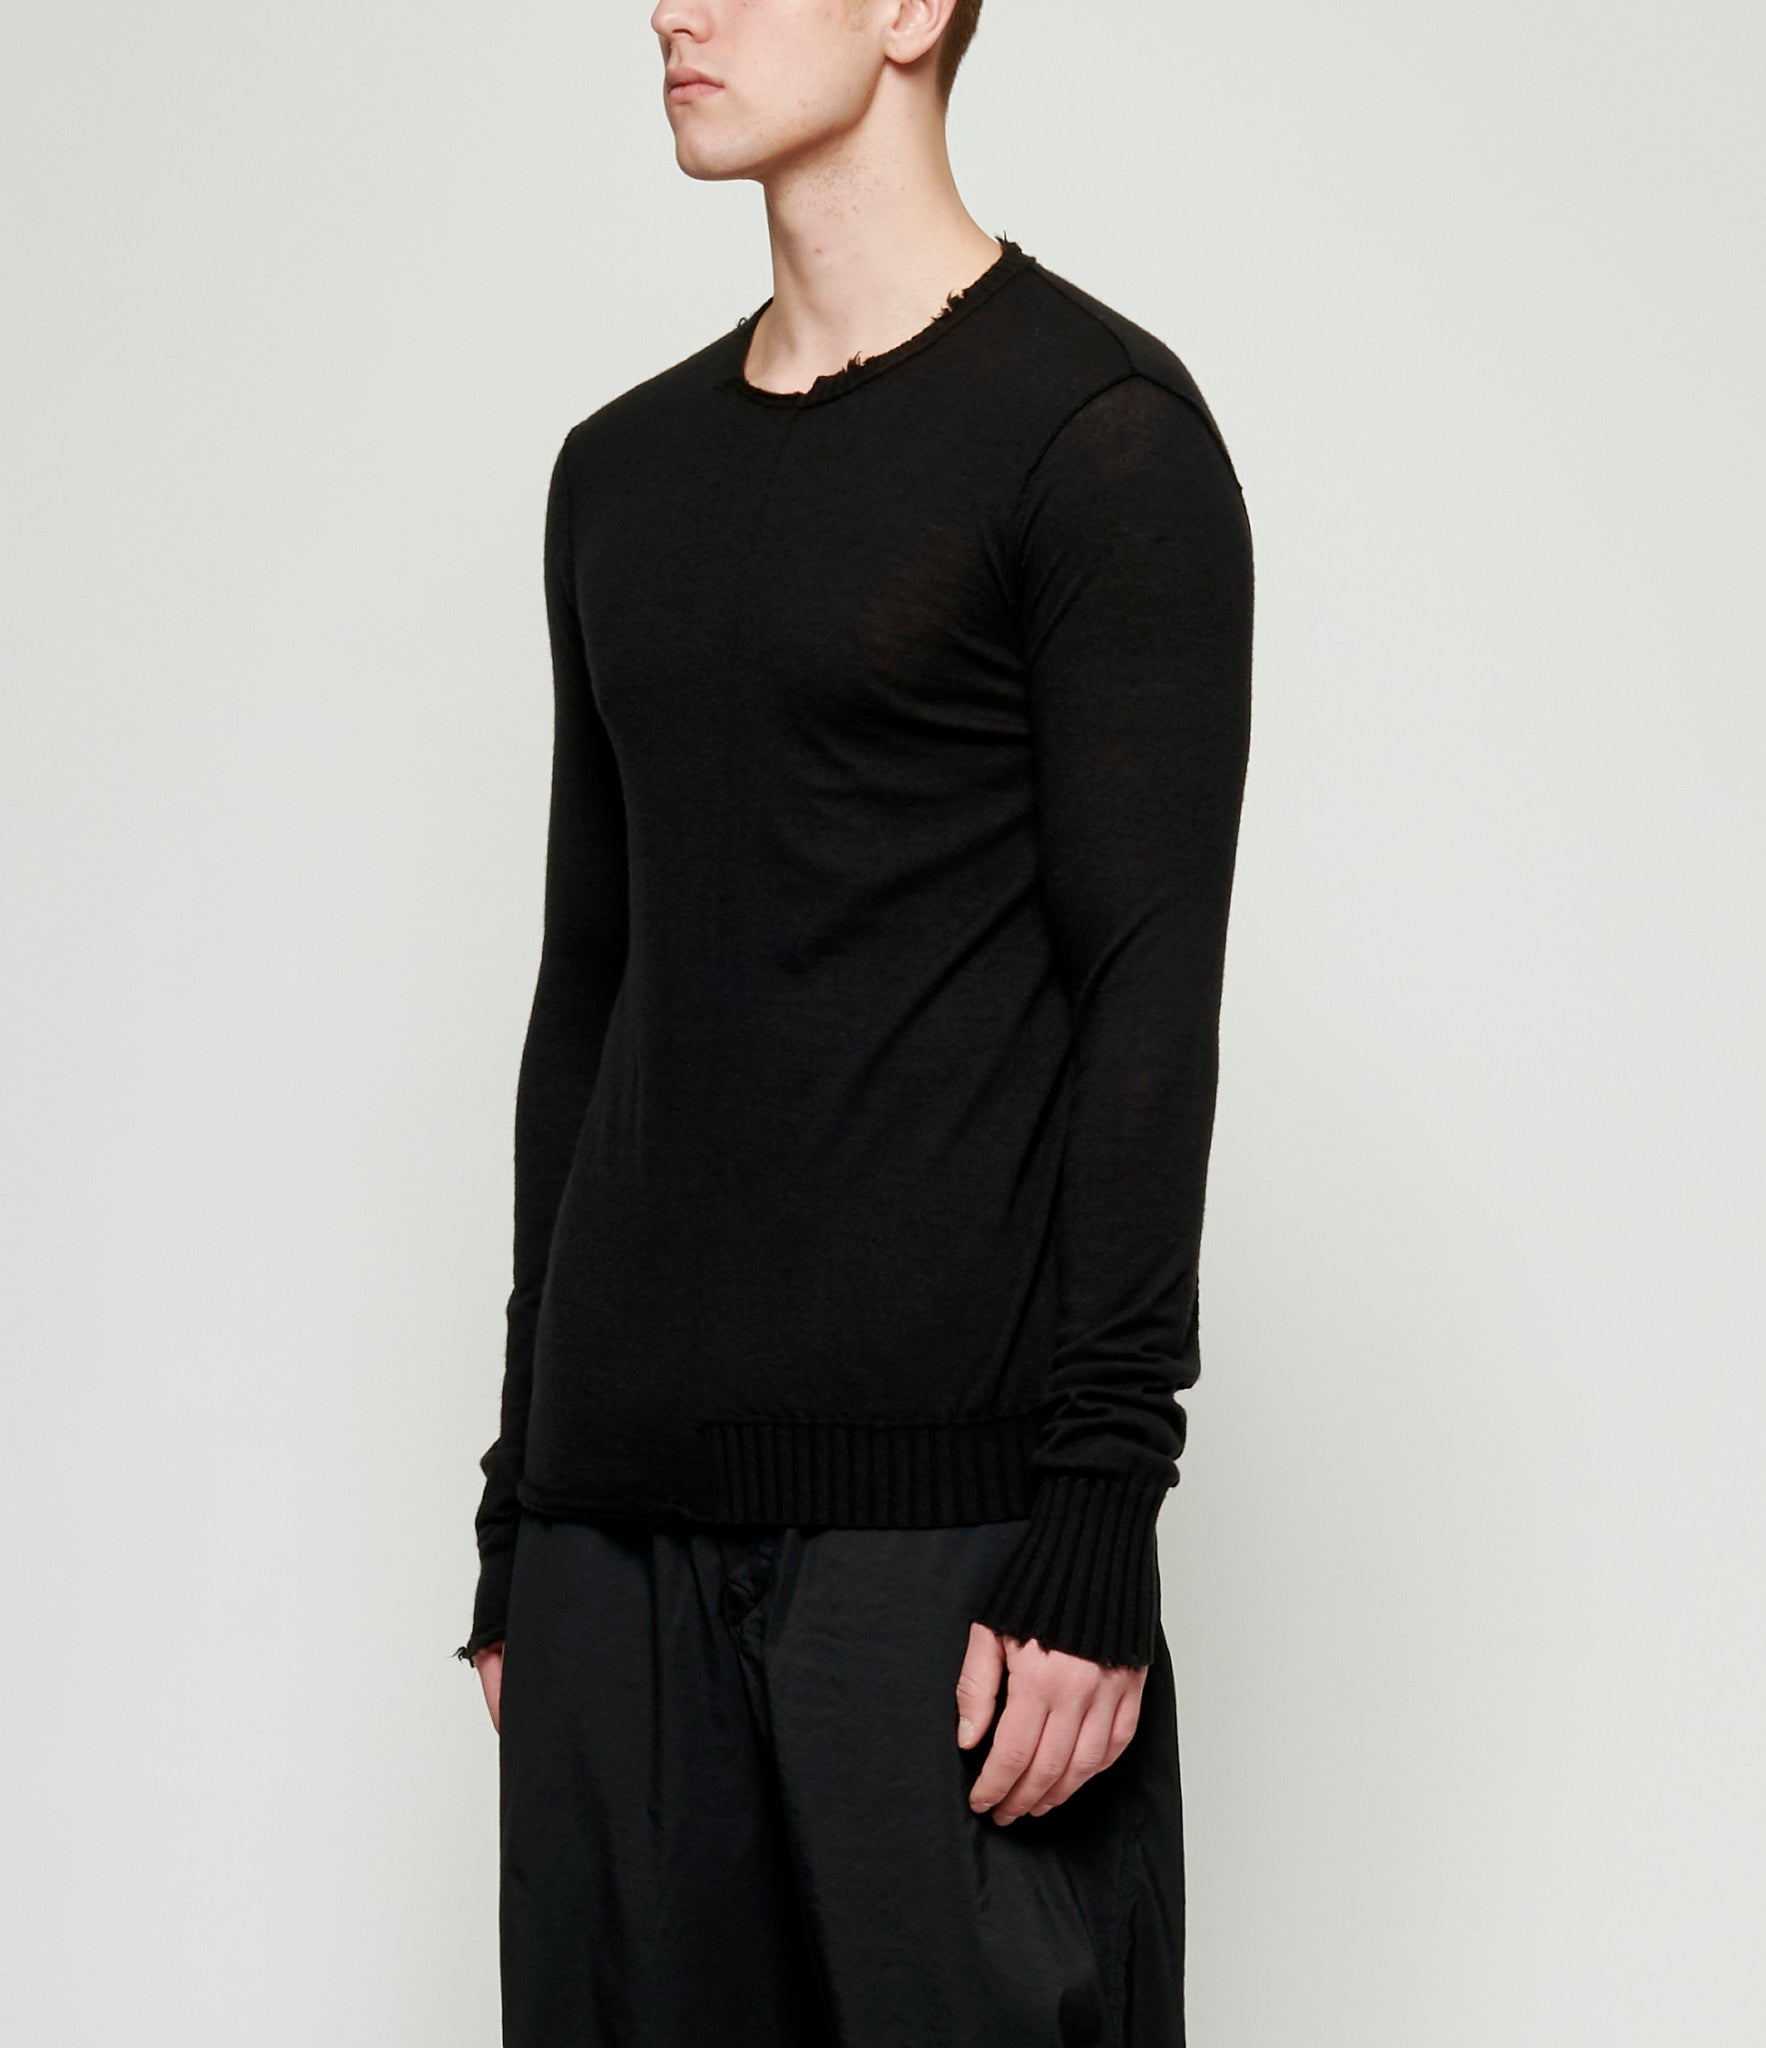 Ziggy Chen Deconstructed Baby Cashmere Sweater